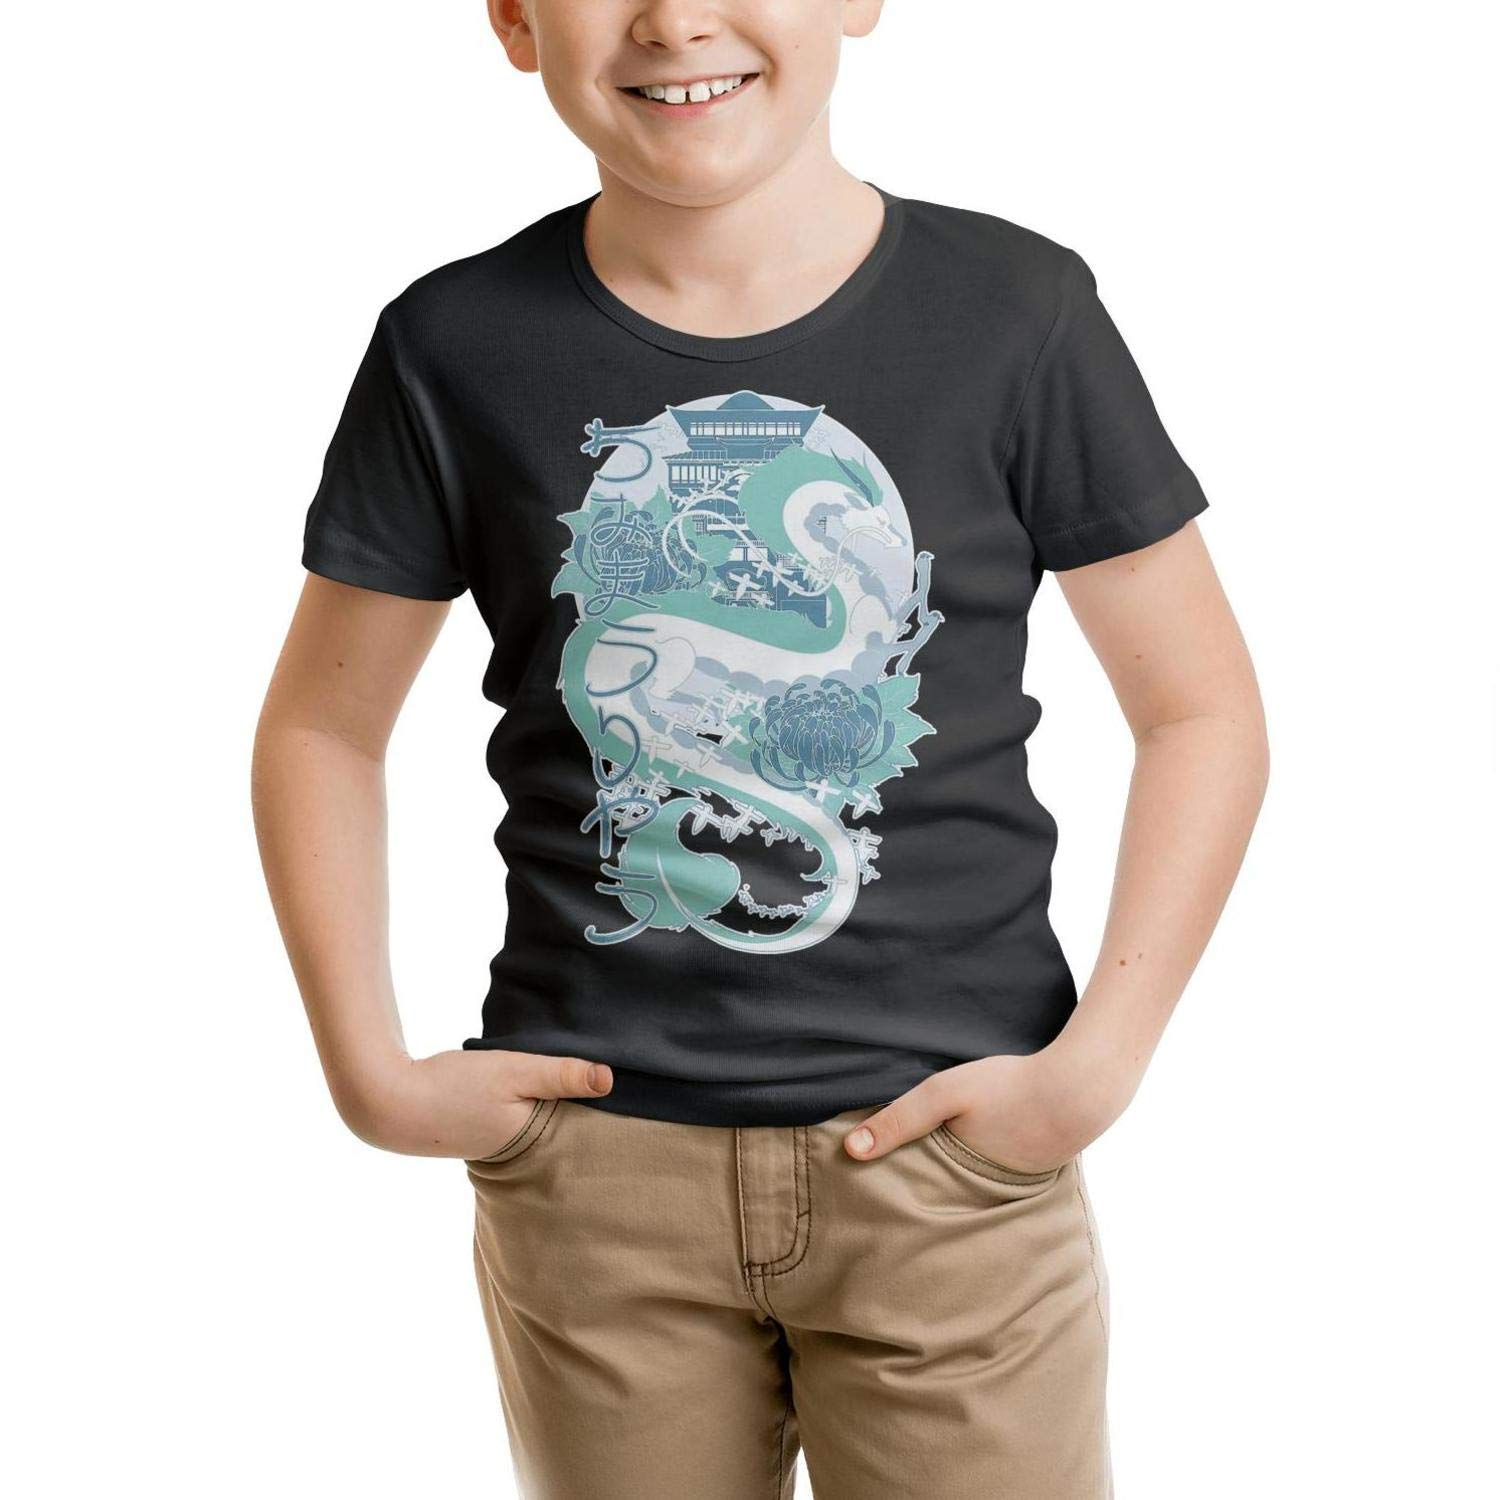 DYONG Short Sleeve Crew Neck Tshirt for Kids Basic Cool Collection Tee